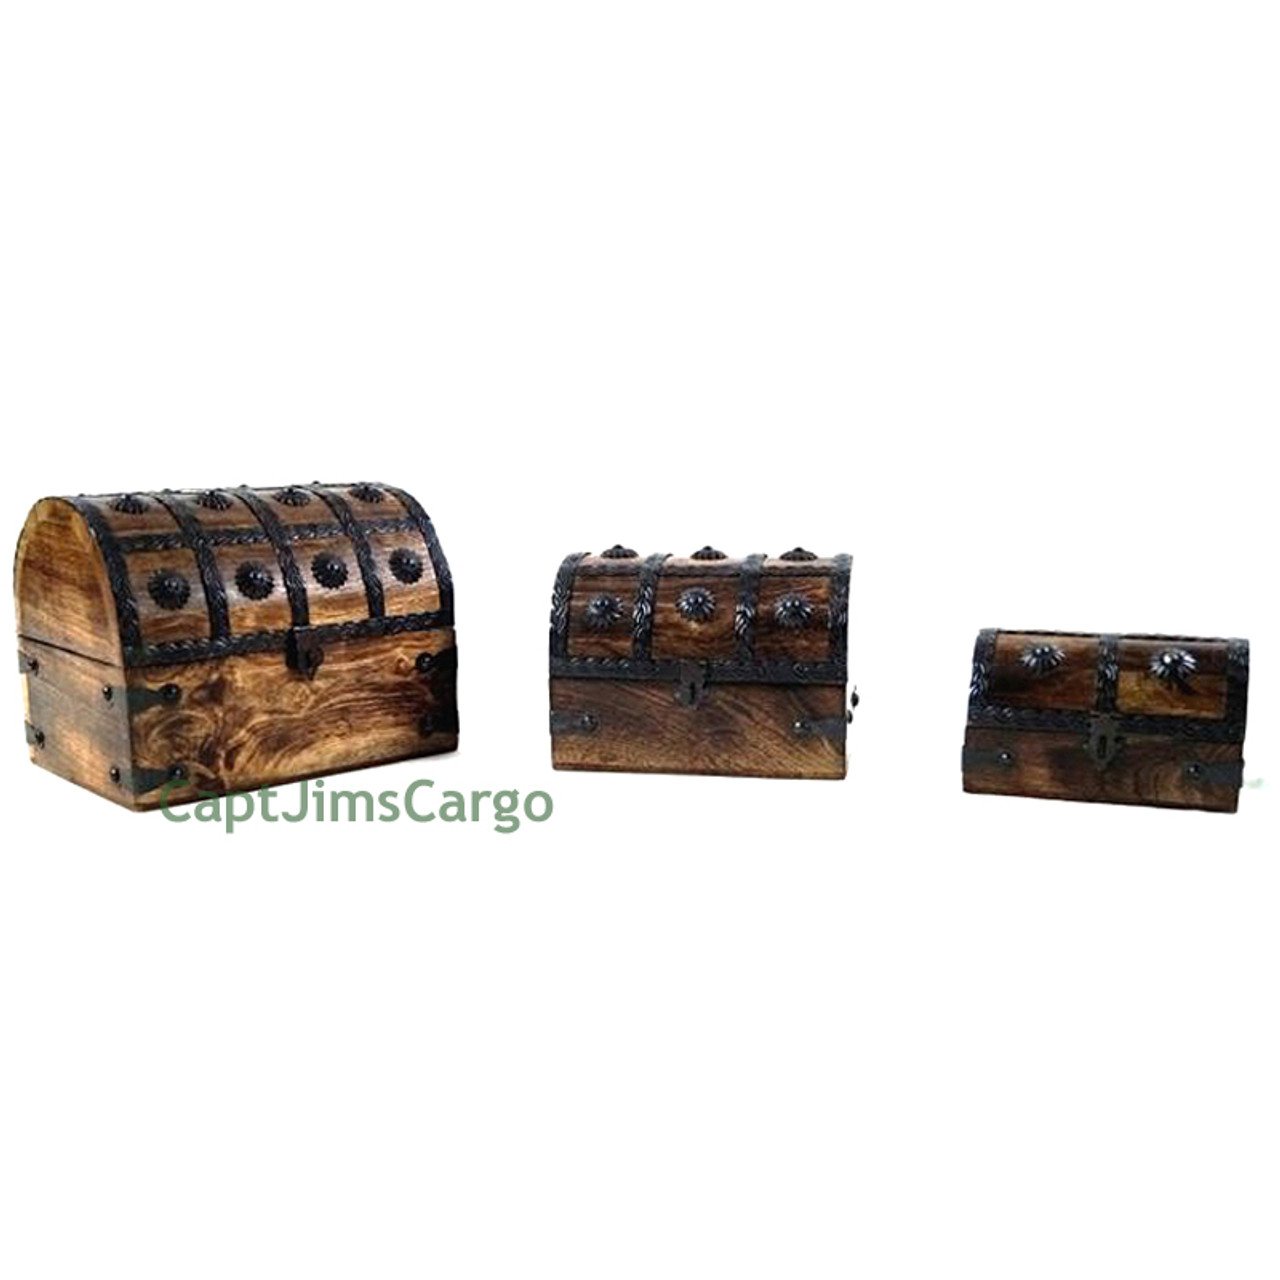 Pirate Treasure Chest Nested Wooden Keepsake Boxes